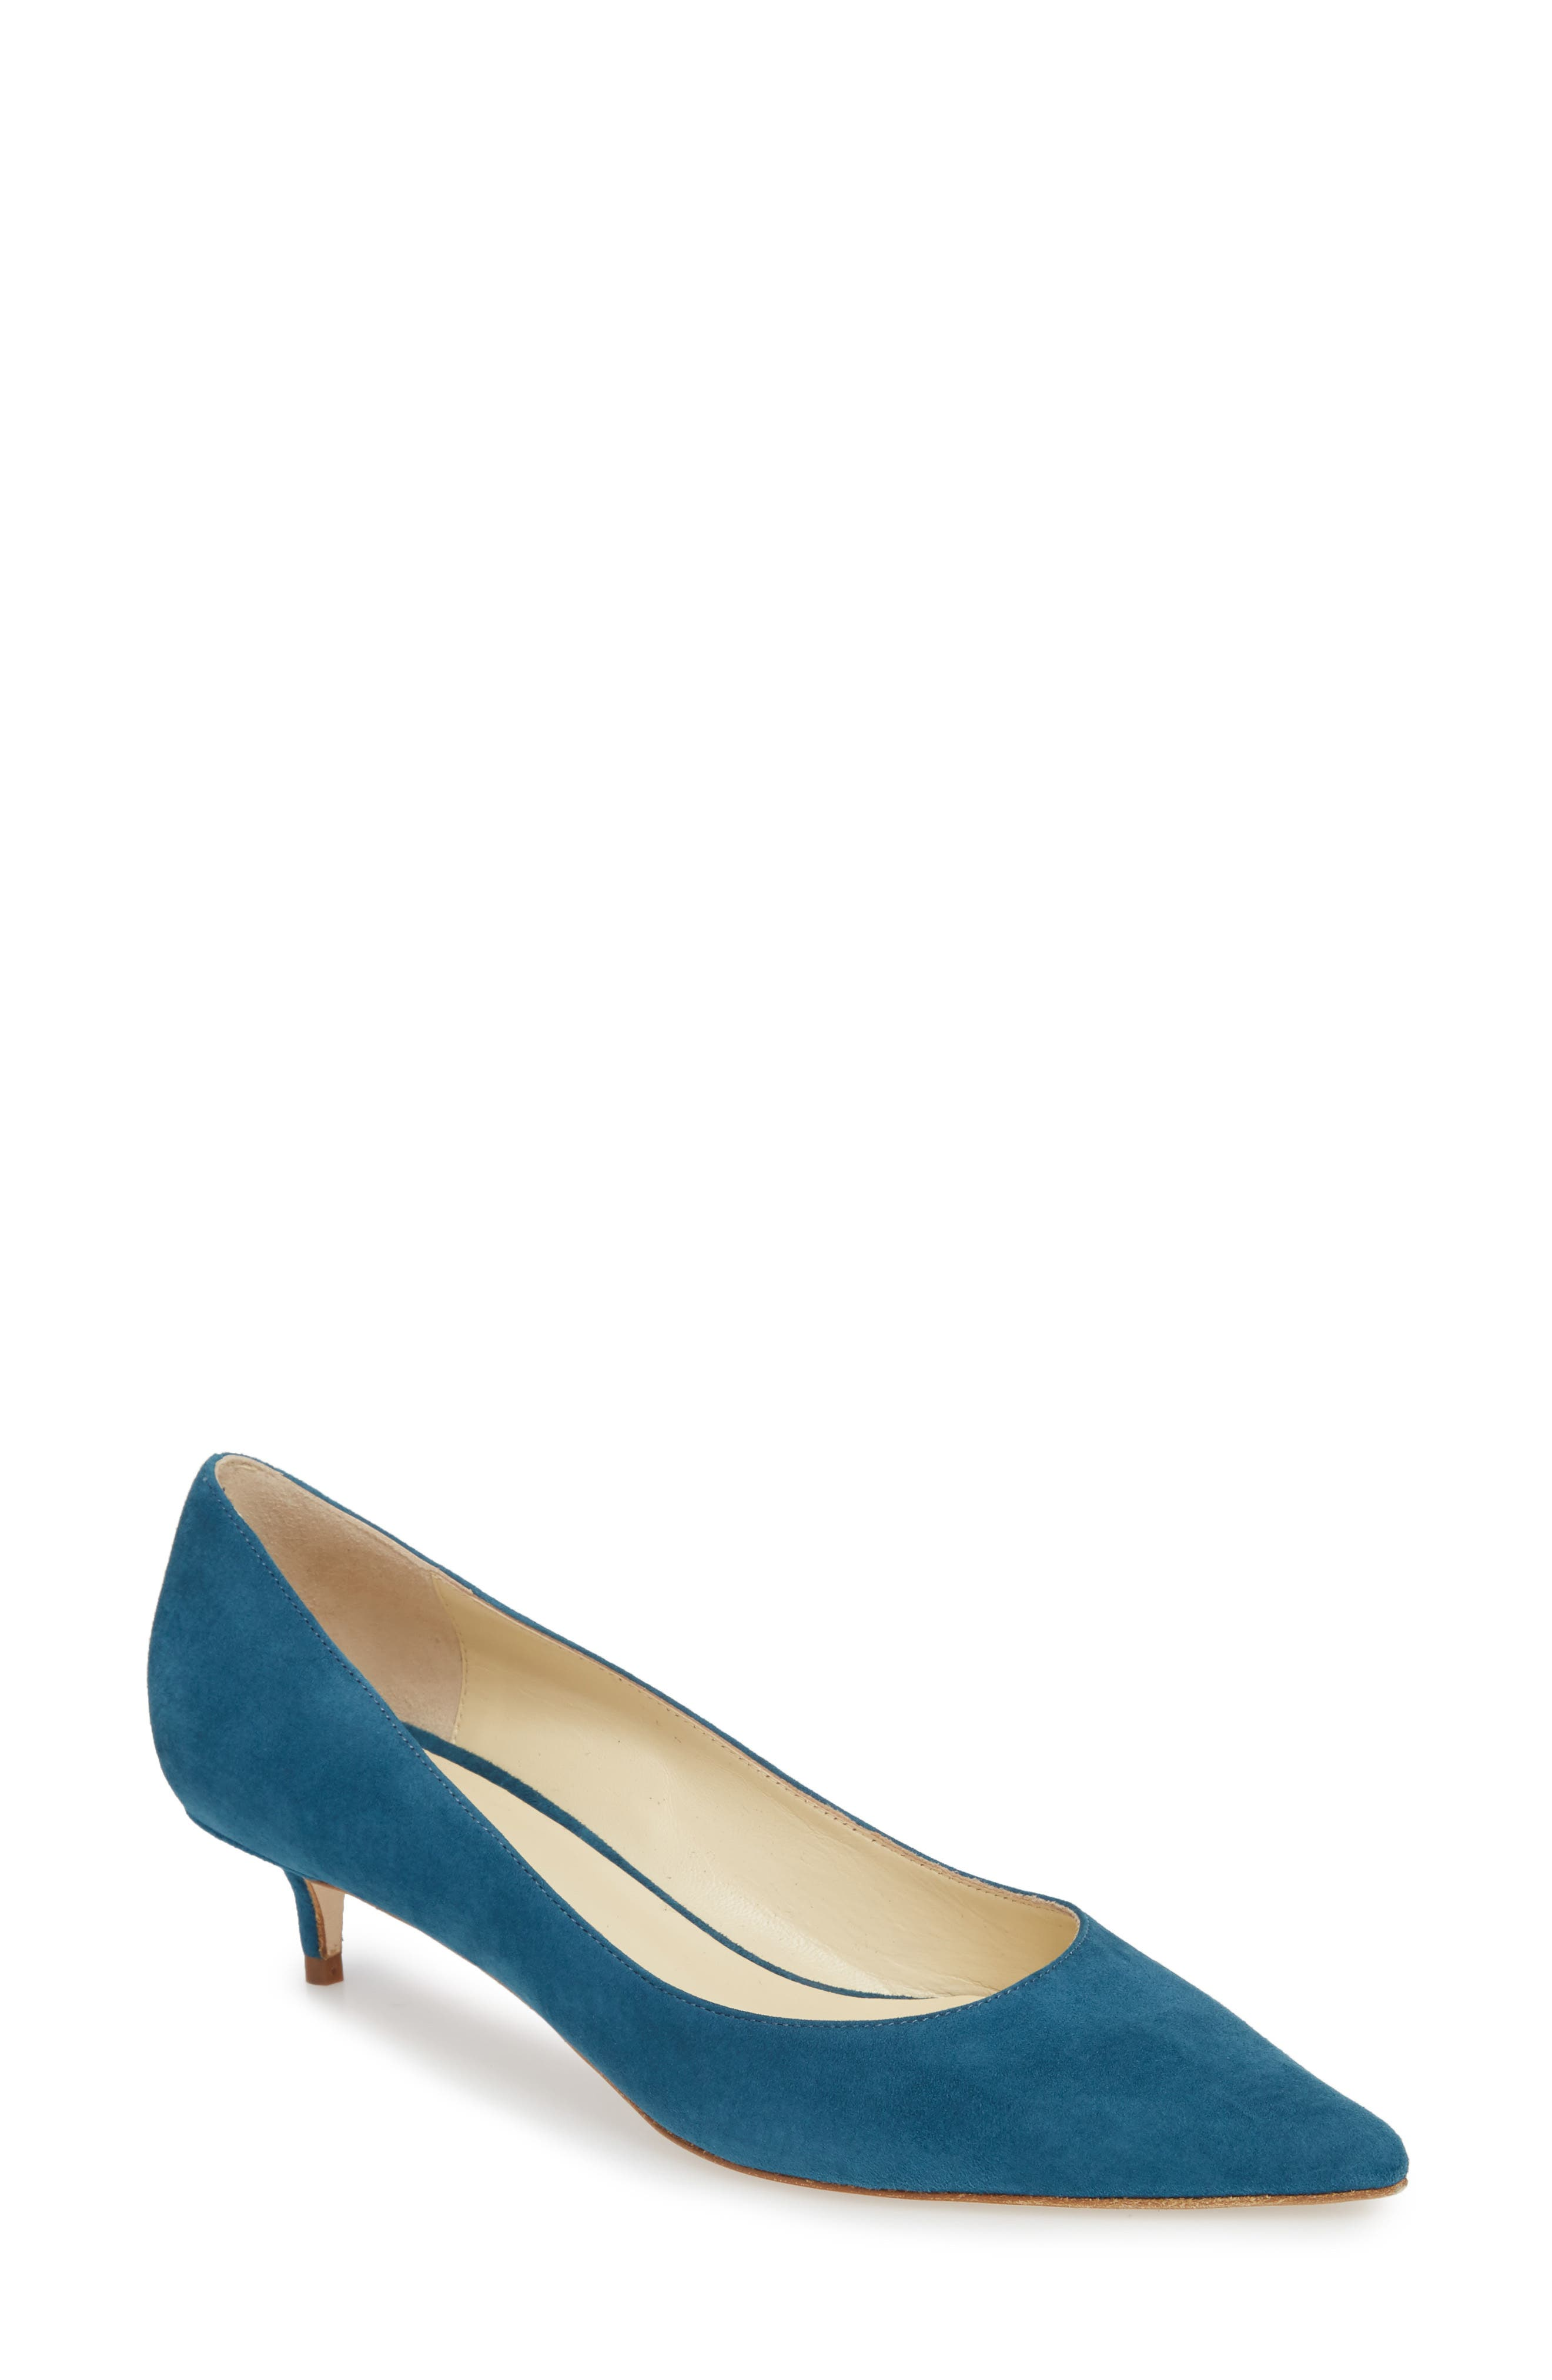 Butter Born Pointy Toe Pump,                         Main,                         color, TEAL SUEDE